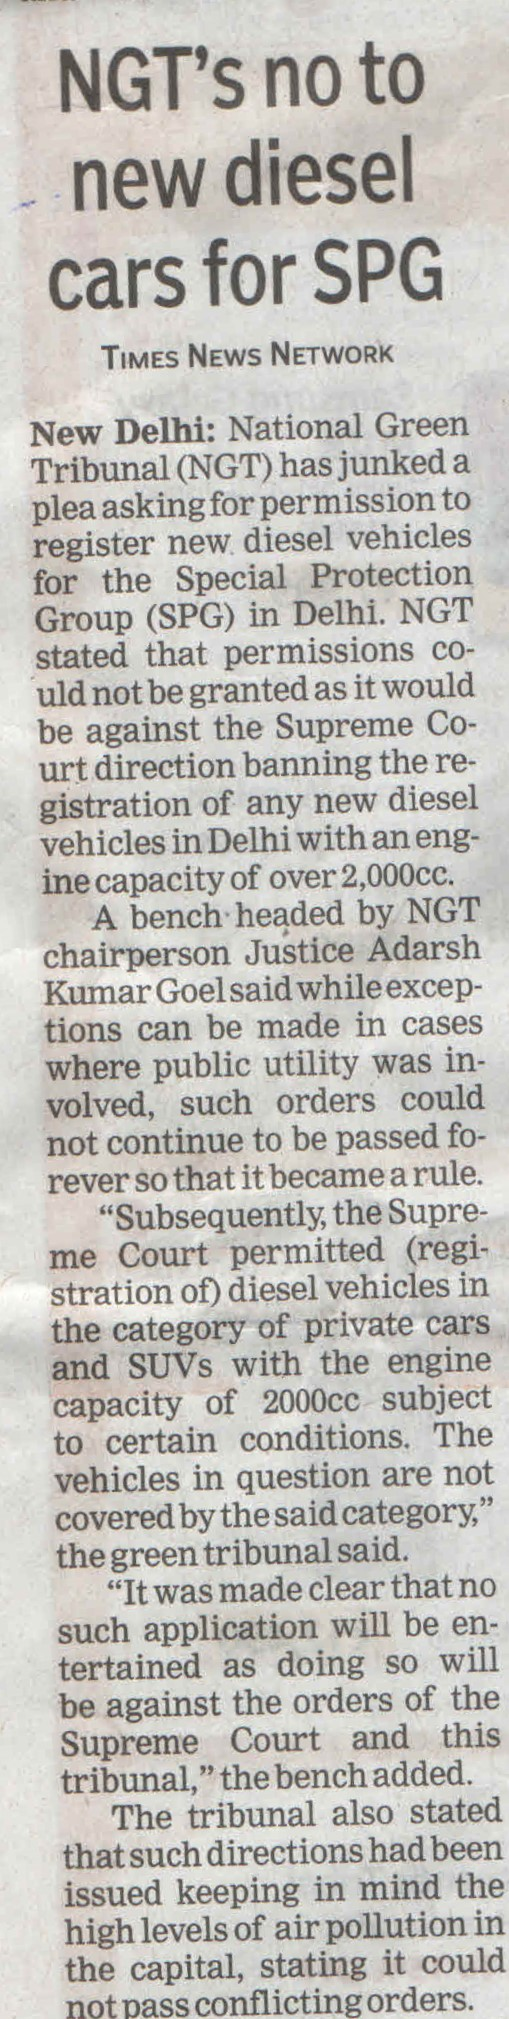 NGT's no to new diesel cars for SPG